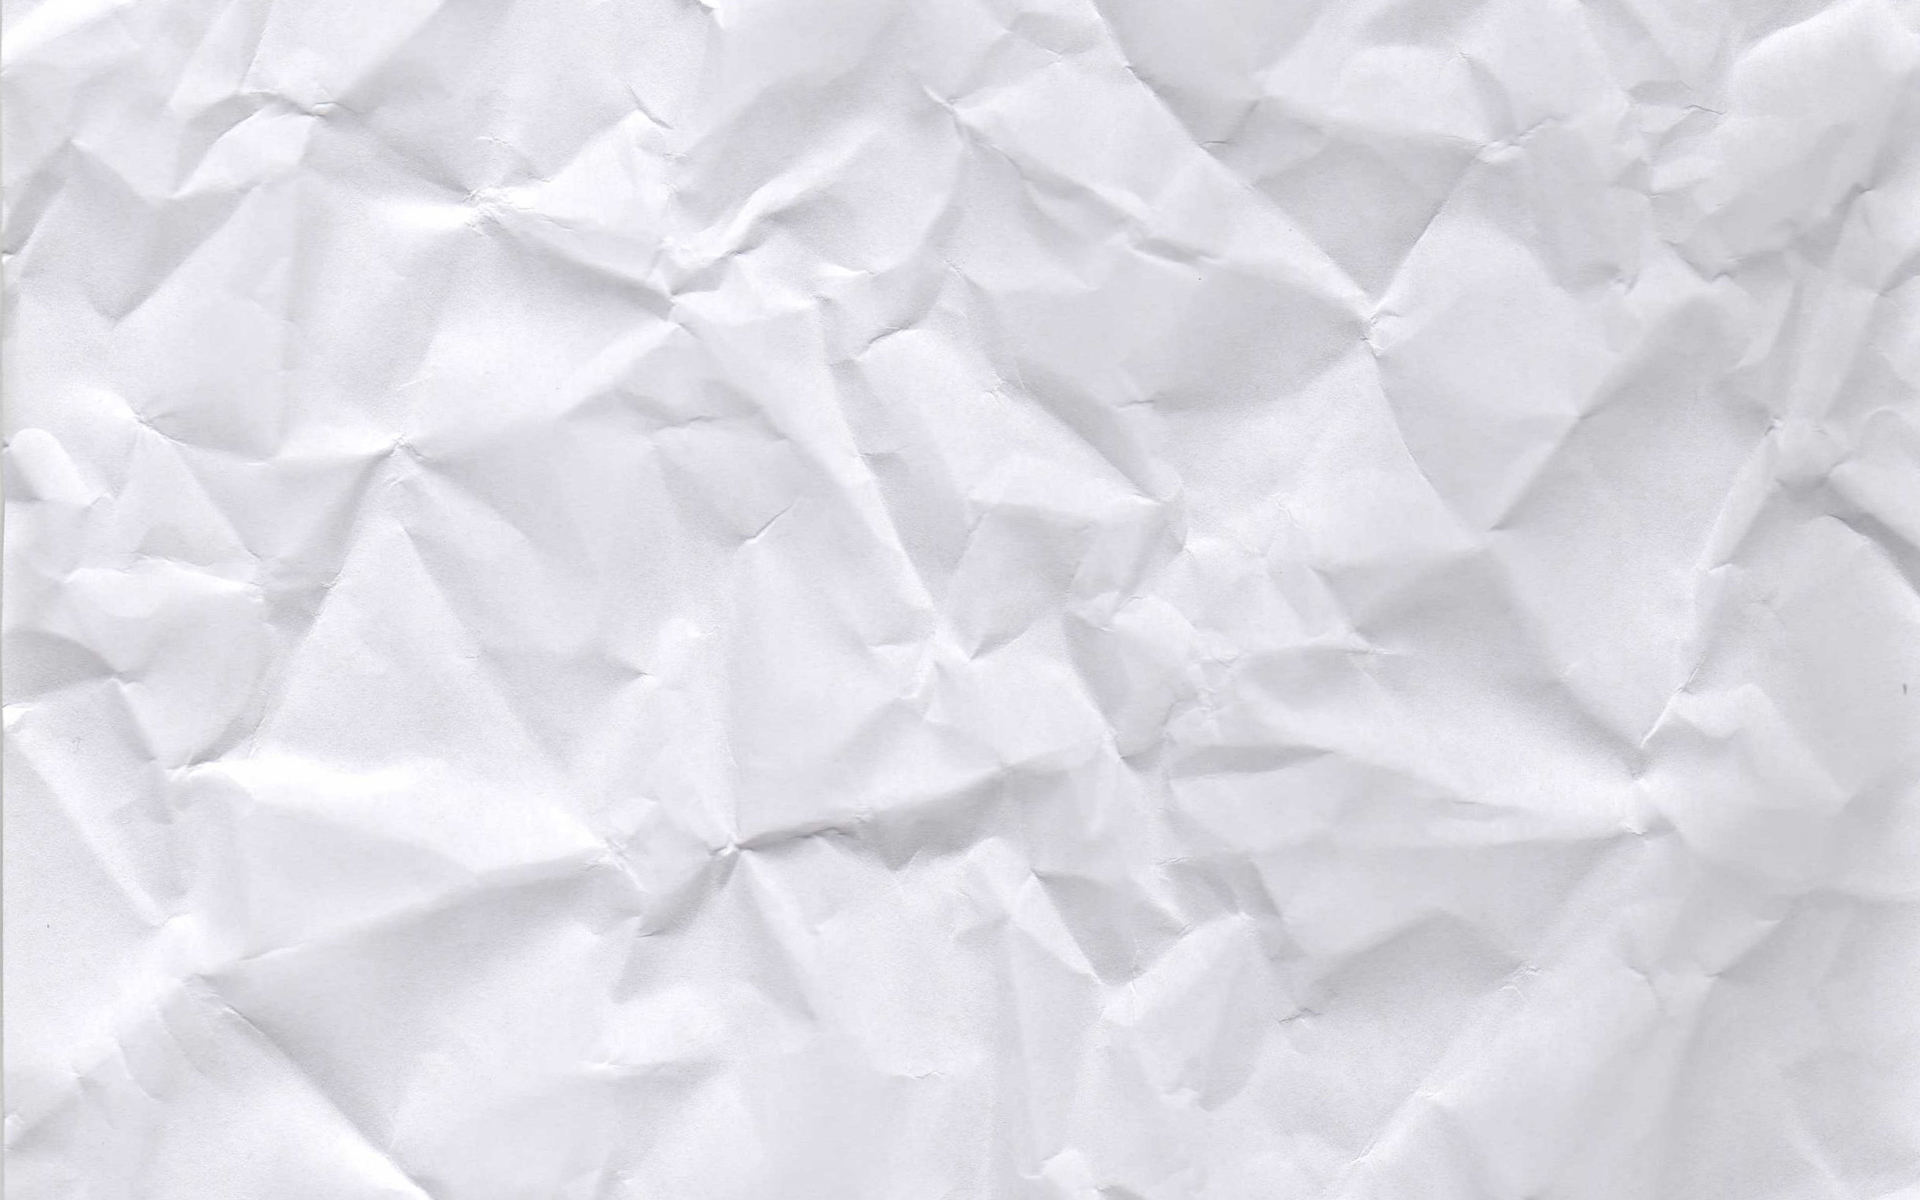 Crumpled Paper Texture | Free Images at Clker.com - vector ...